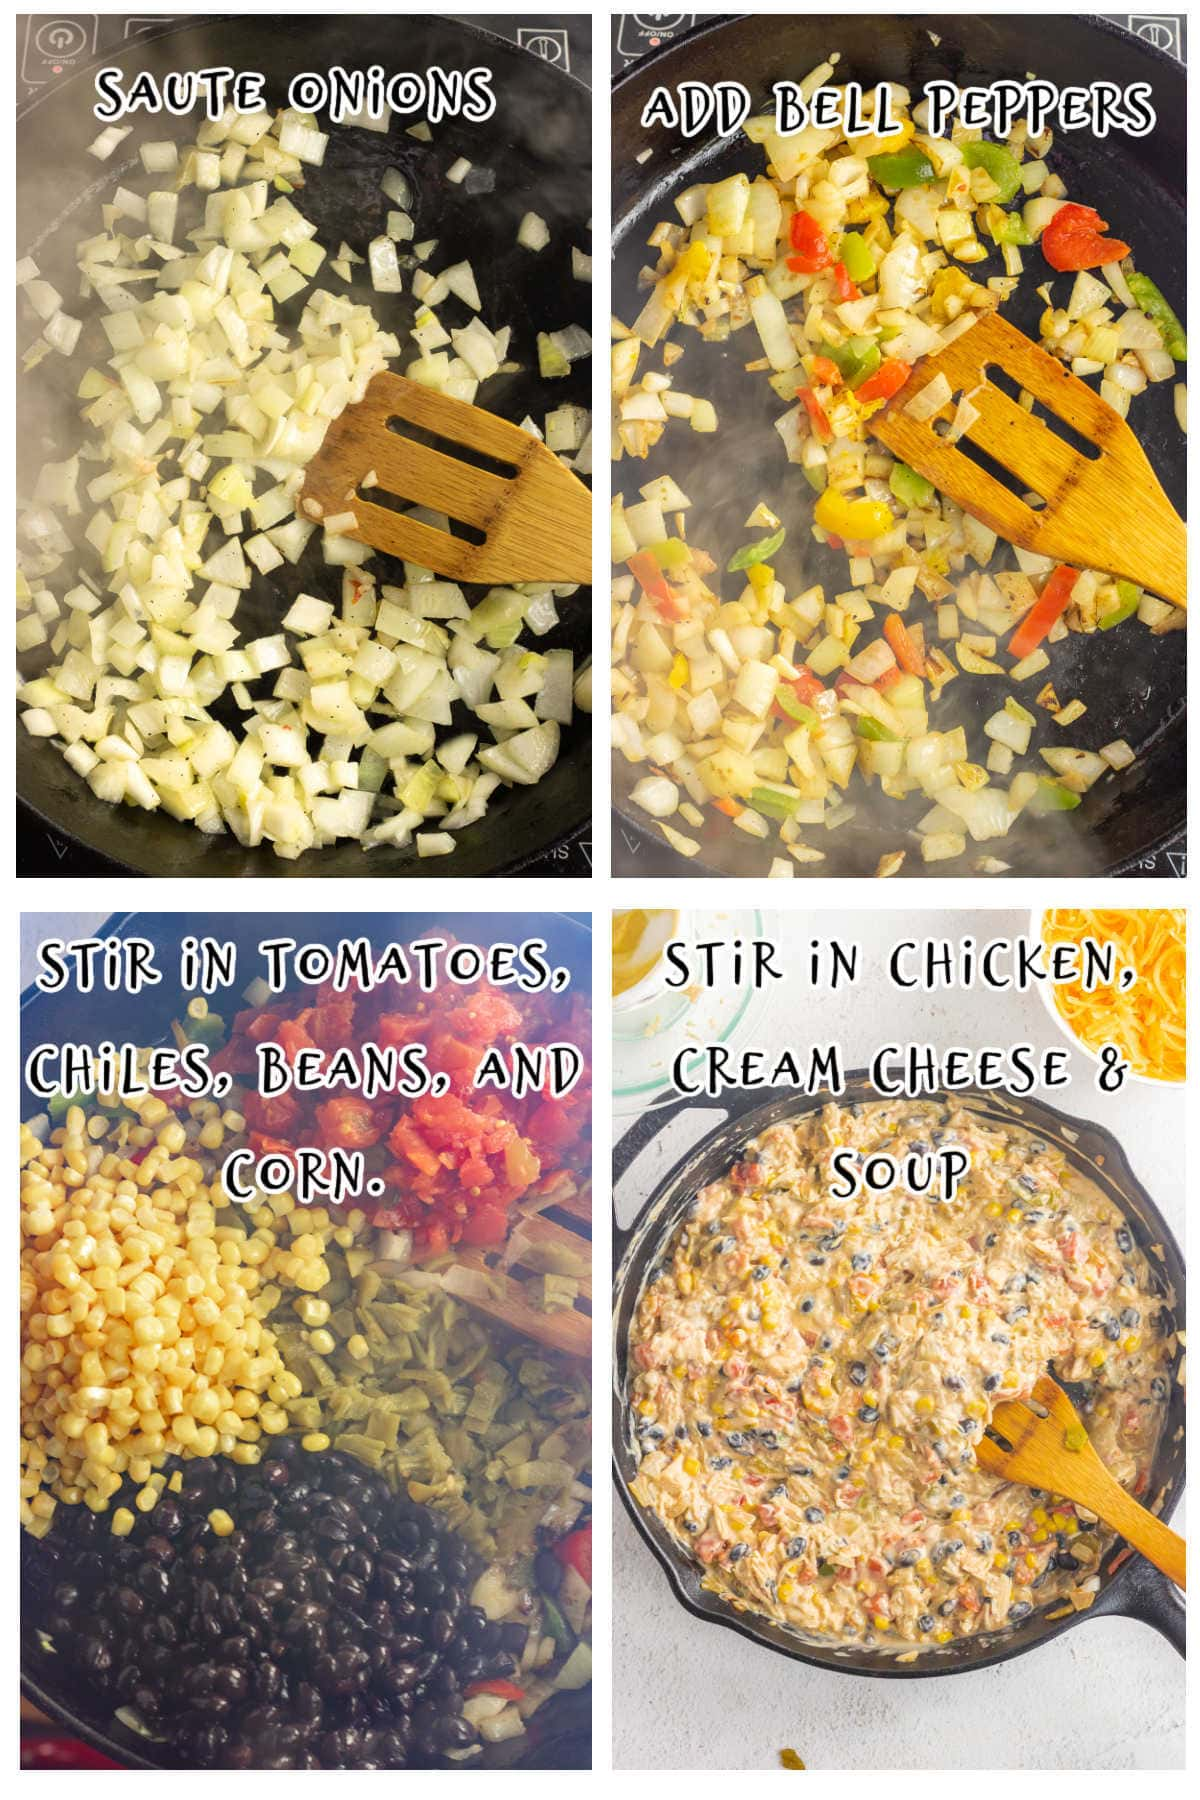 Collage of images showing steps 1-4 for making this recipe.